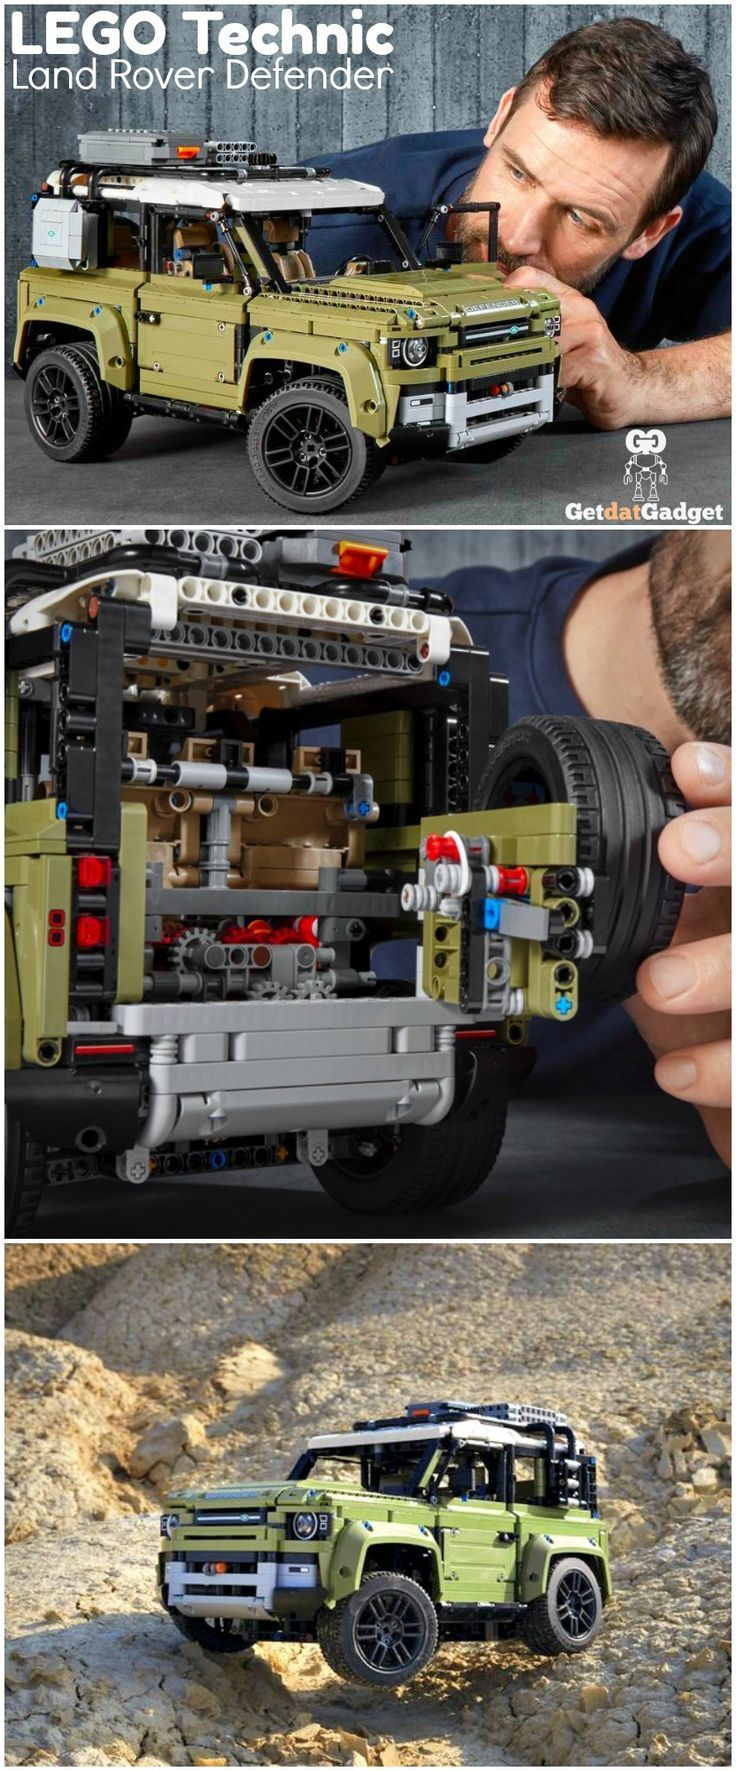 Lego Land Rover Defender With Working High And Low Range Gears Getdatgadget Land Rover Defender Land Rover Lego Police